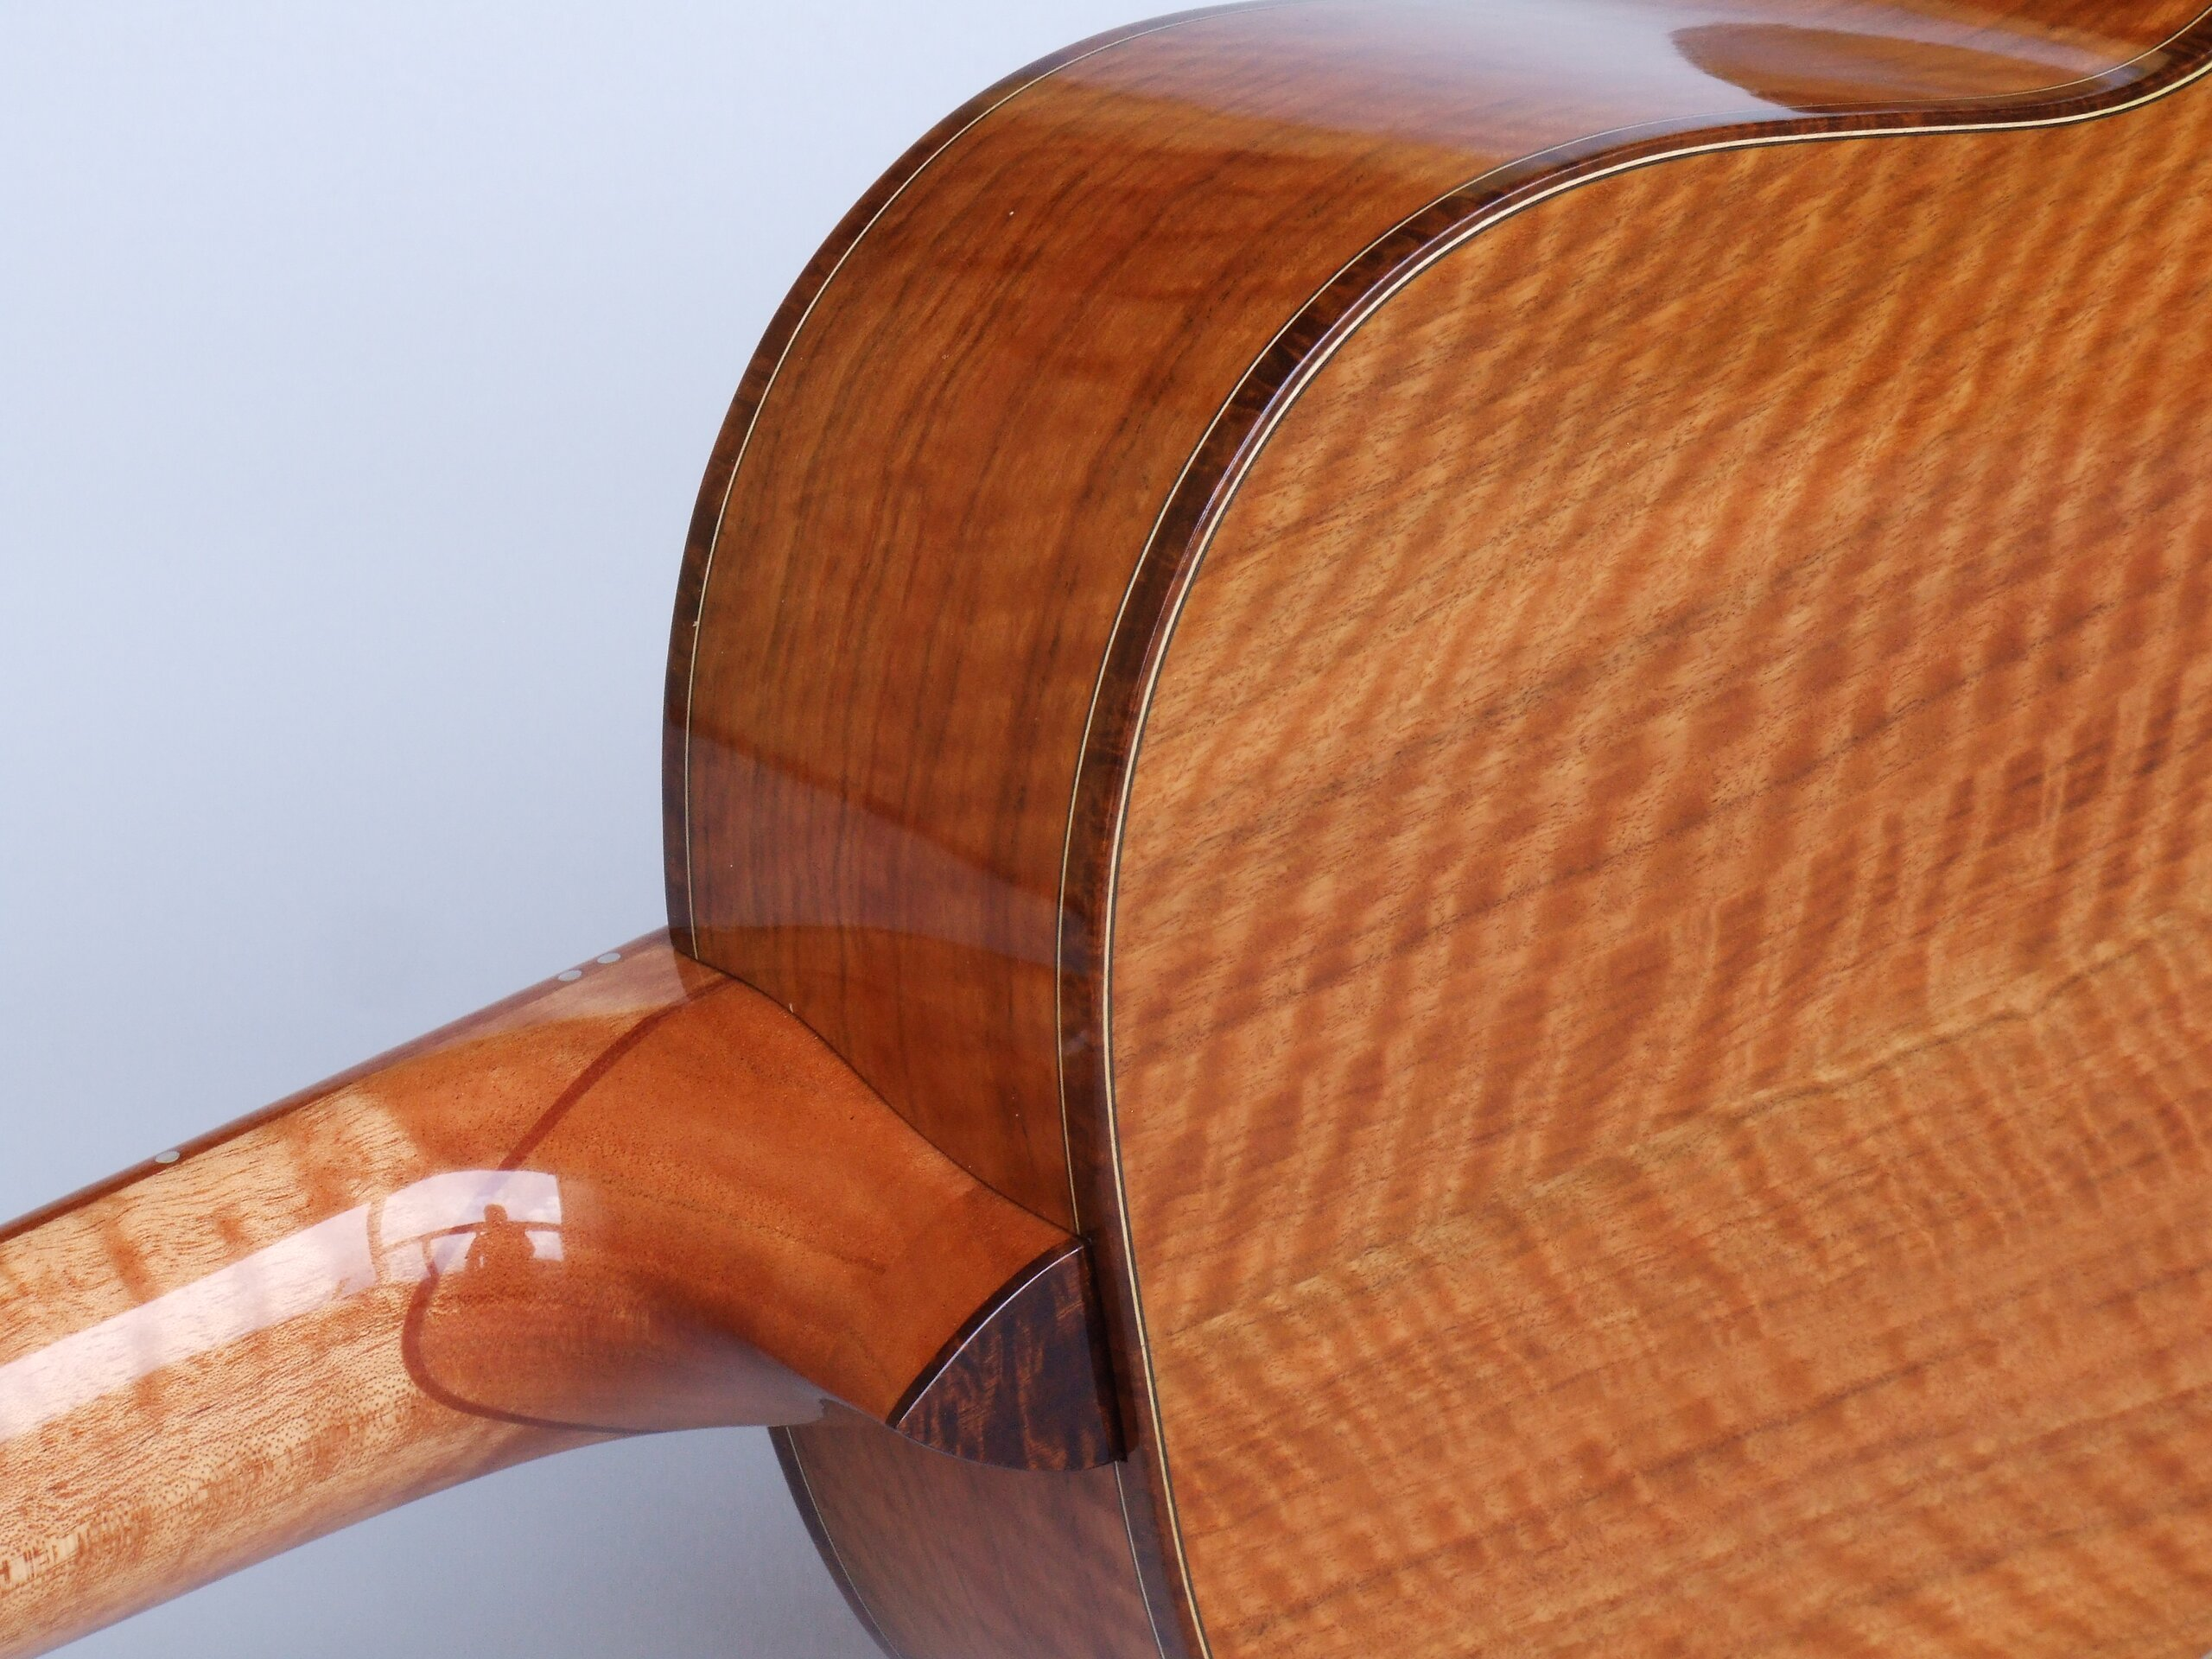 Trevor Gore super-parlour guitar with figured Wandoo back and sides and tilt neck